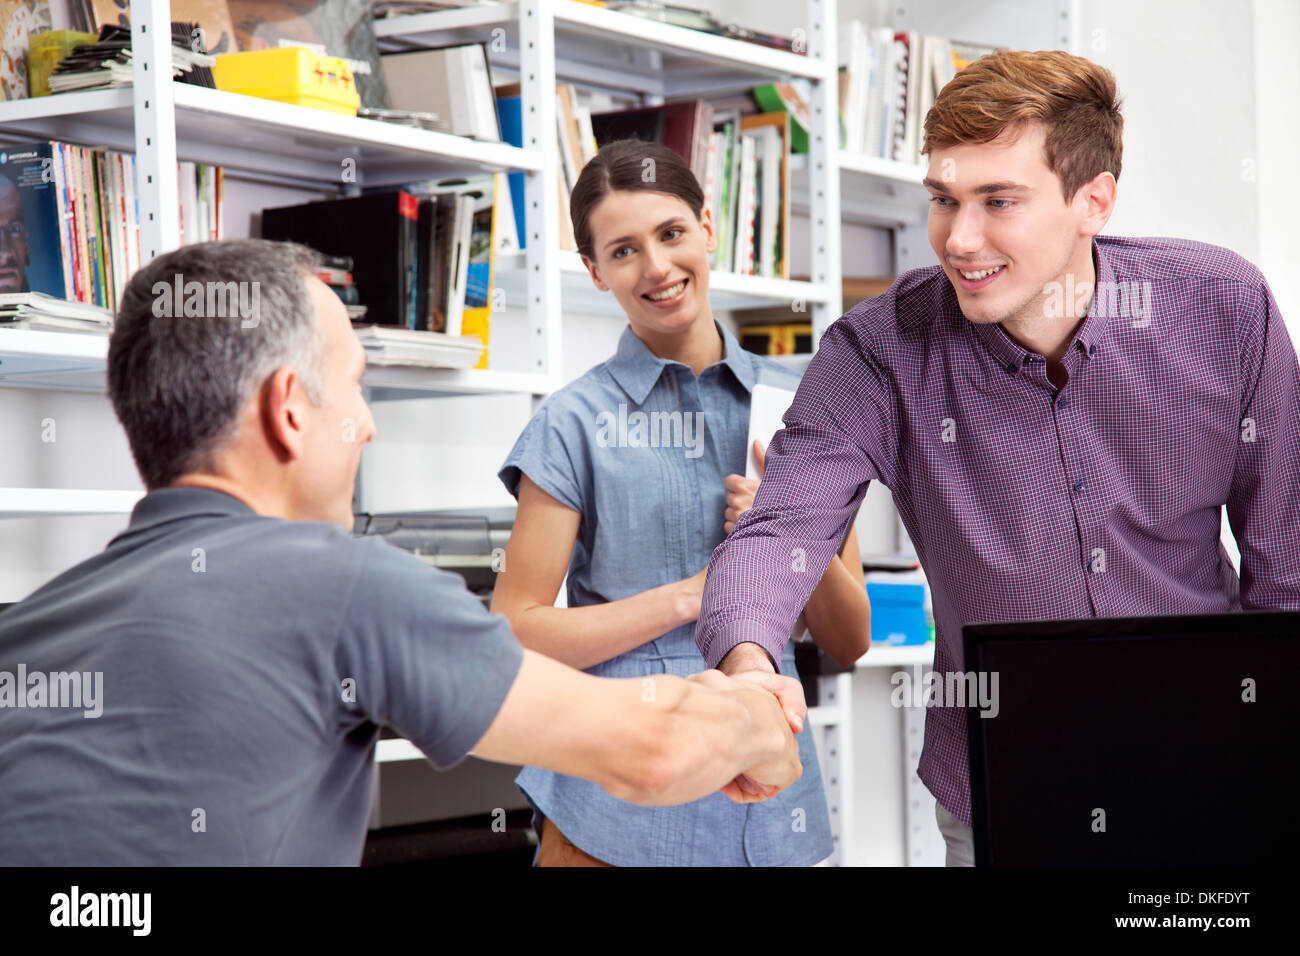 Male colleagues shaking hands - Stock Image